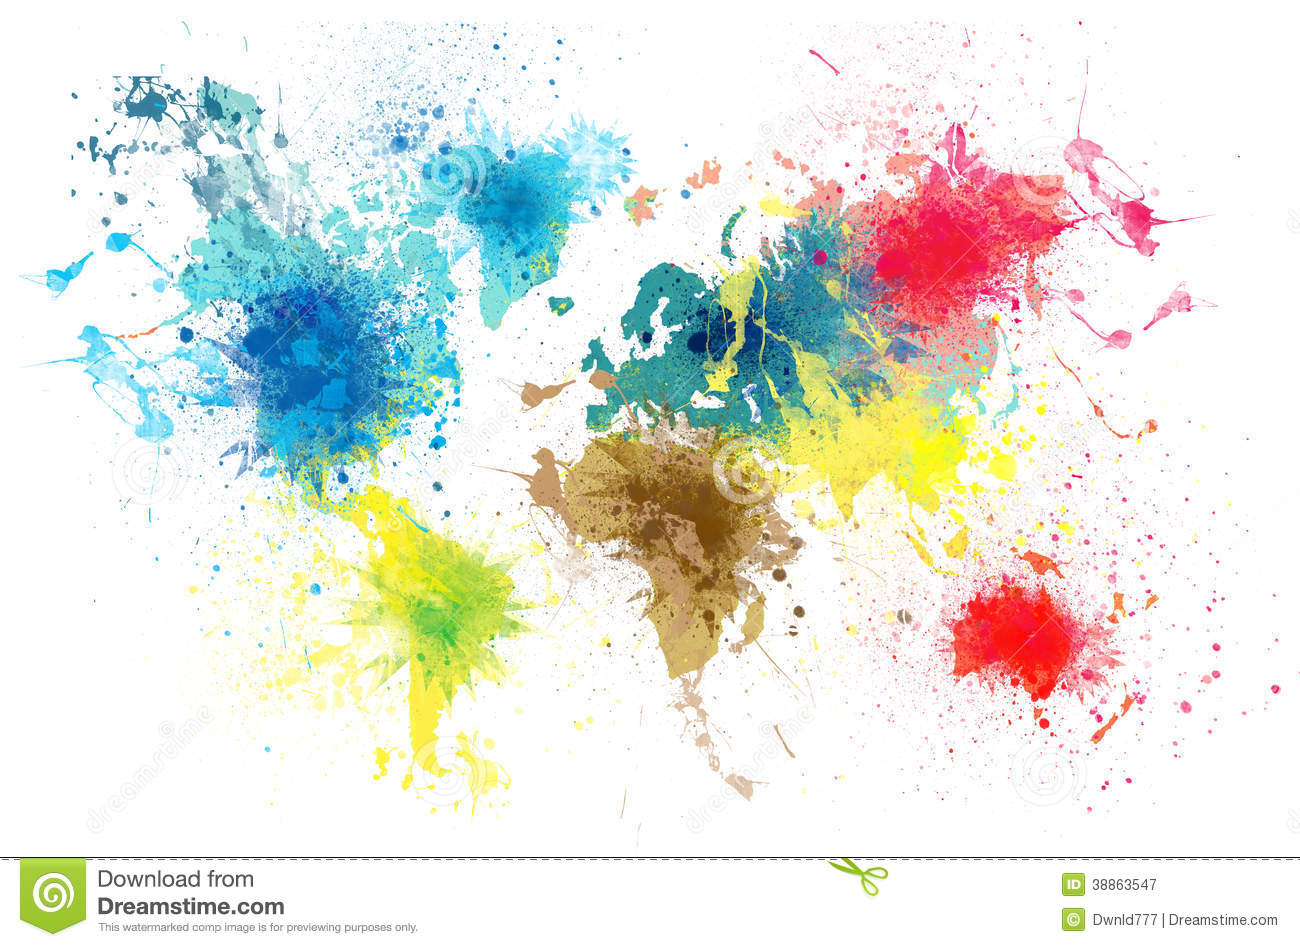 Space Journey 3d Wallpaper World Map With Paint Splashes Stock Illustration Image